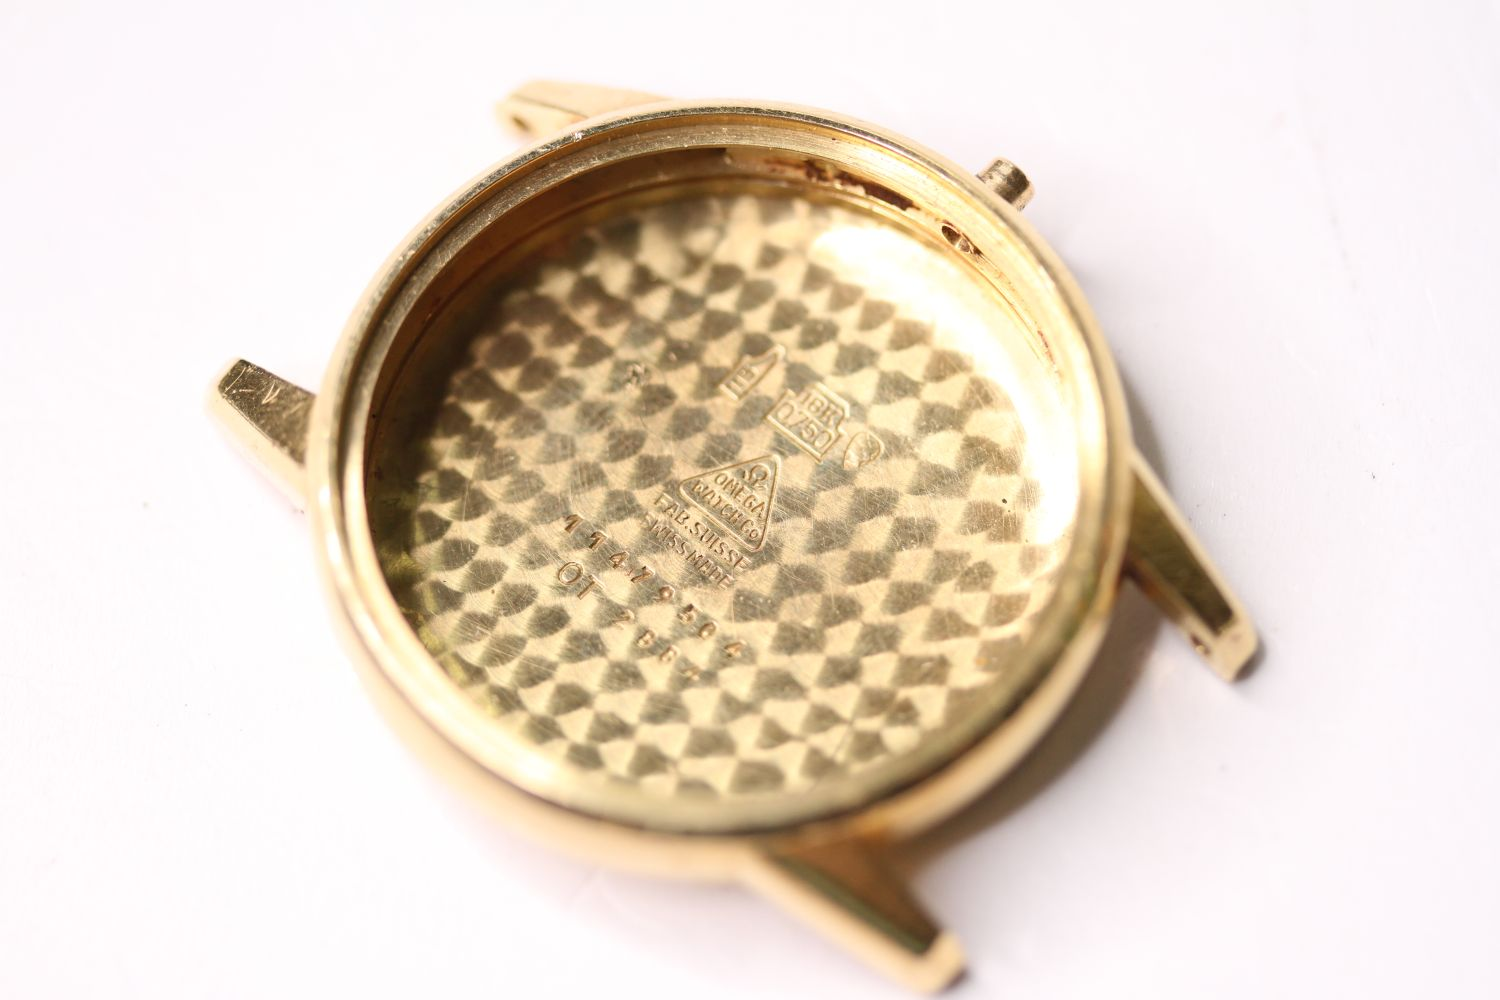 18CT OMEGA CASE, 35mm 18ct gold case, reads omega watch co, fab suisse, swiss made, 11479504, OT